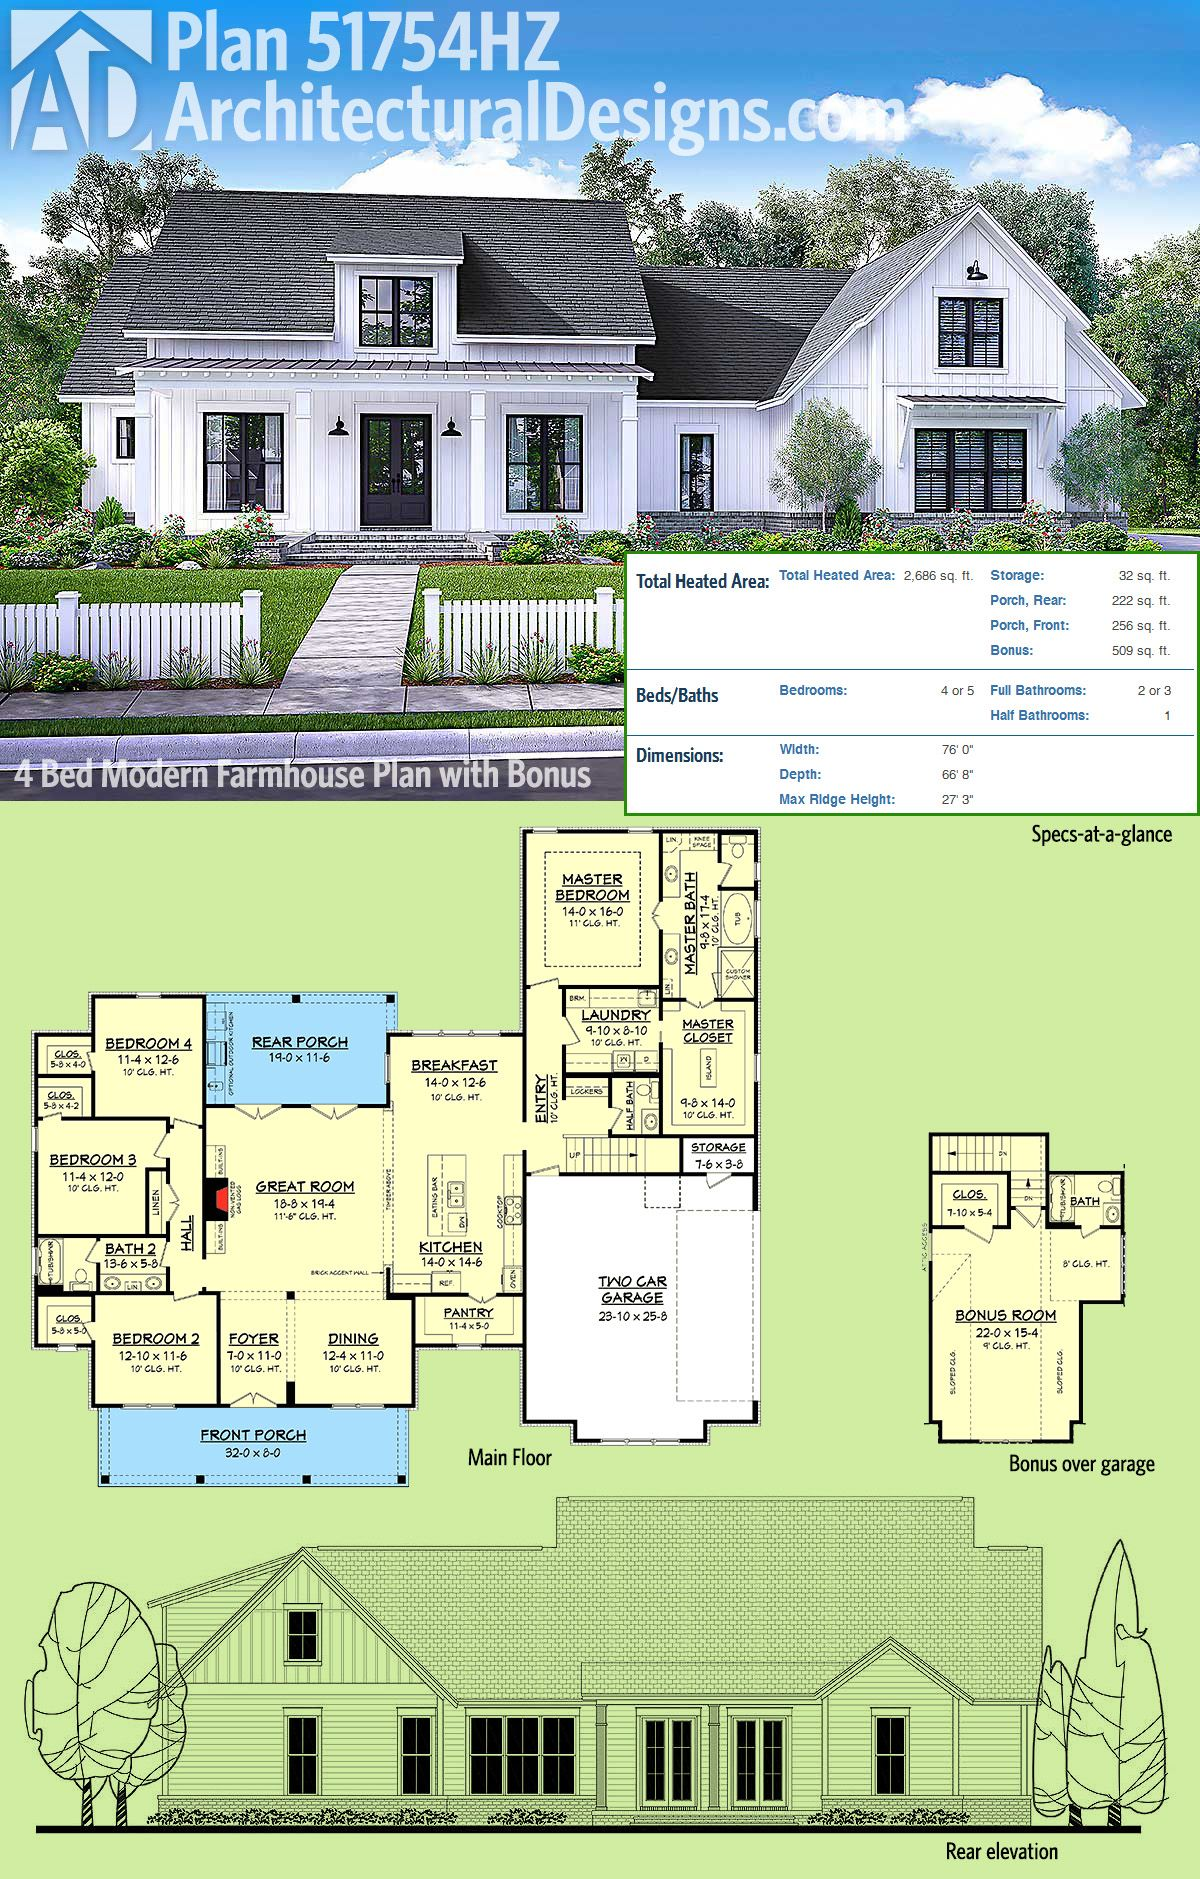 Modern Farmhouse Plans plan 51754hz: modern farmhouse plan with bonus room | farmhouse